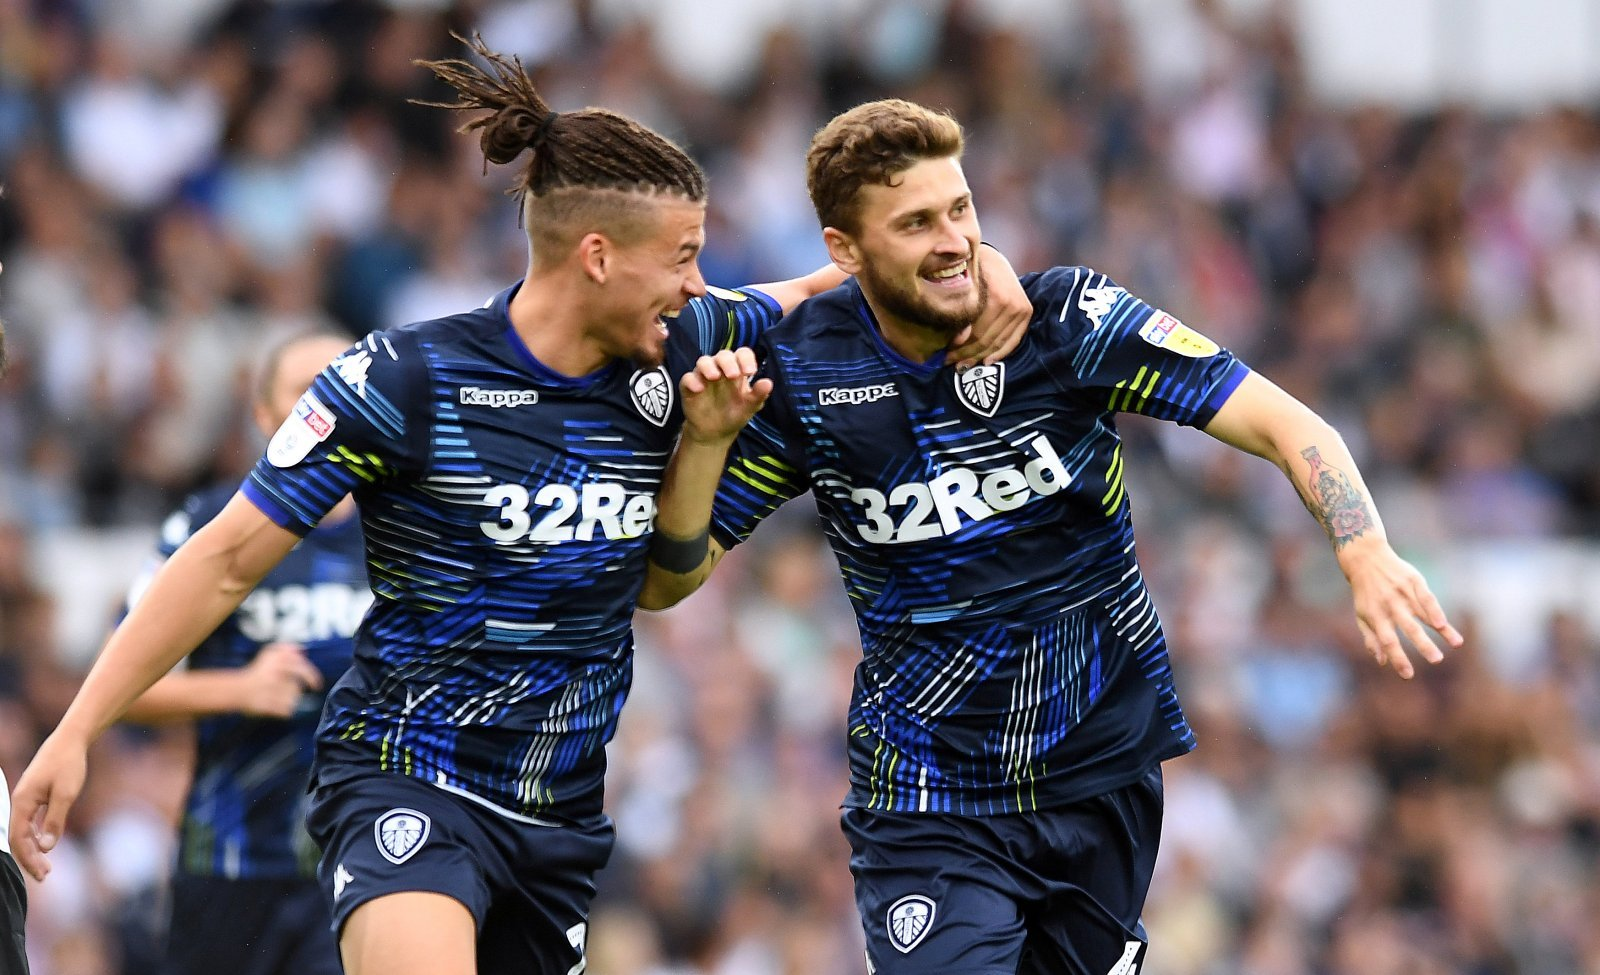 Leeds United ace issues positive message amid difficult